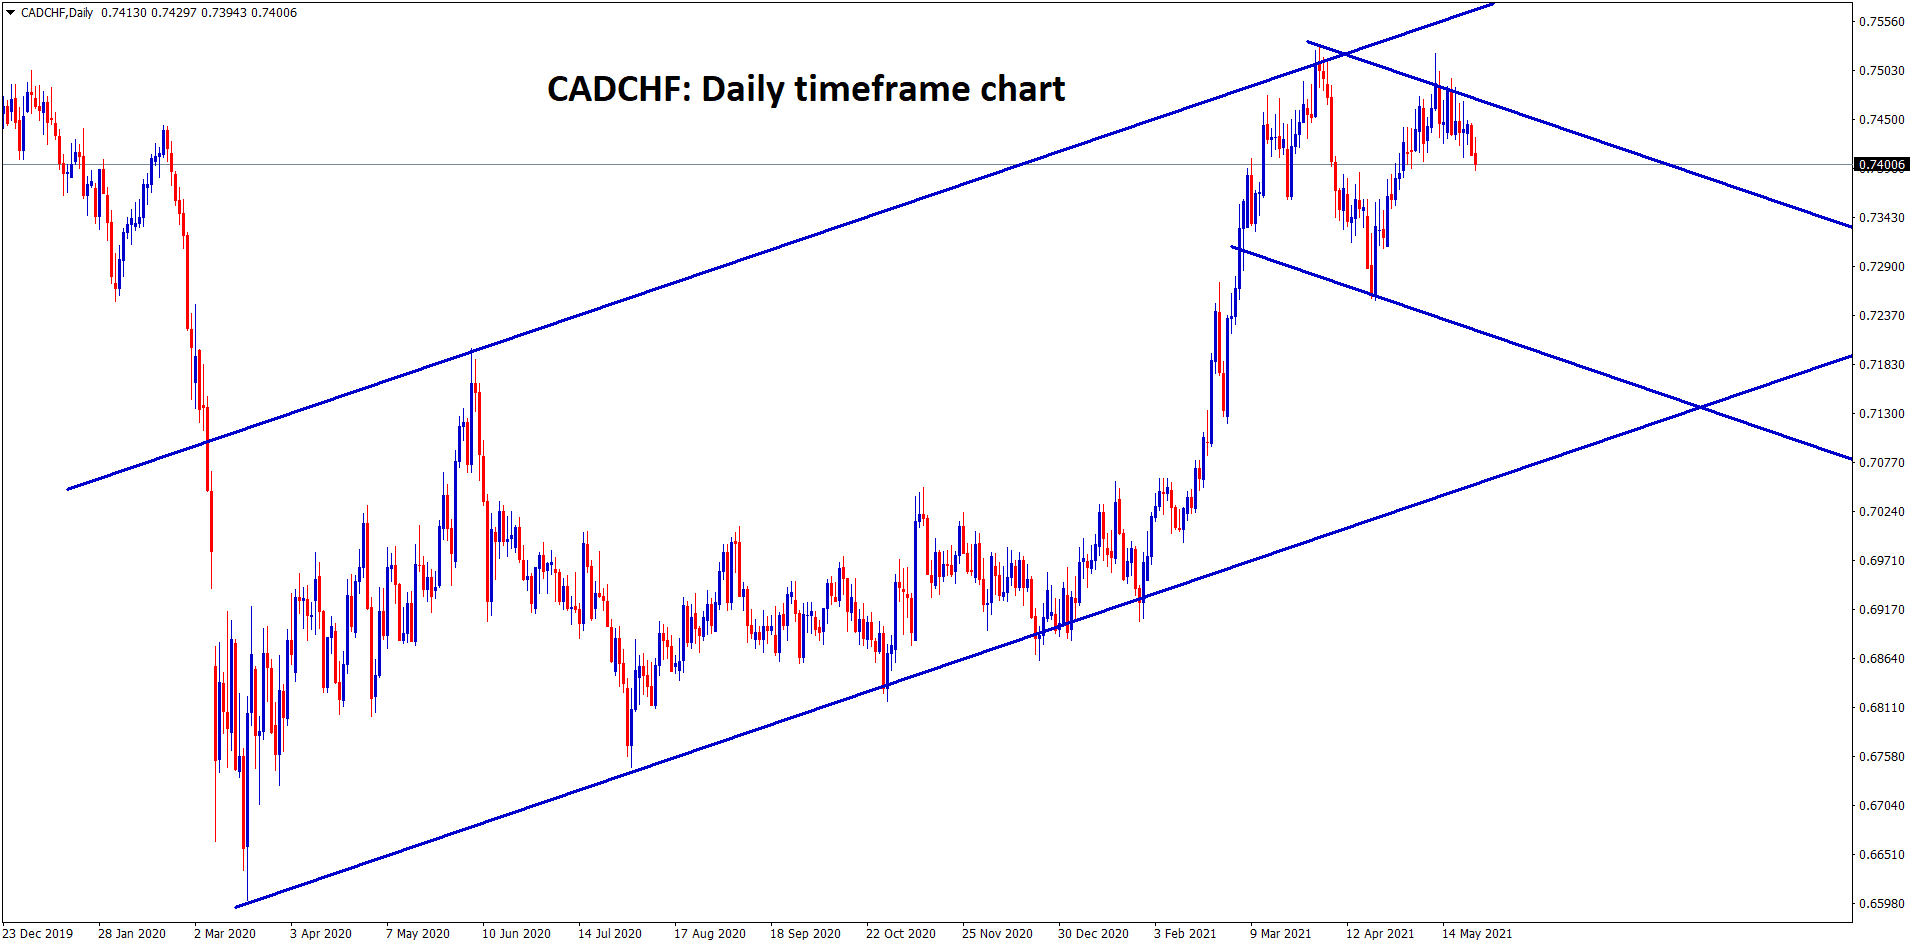 CADCHF is moving in a strong uptrend now trying to make some corrections from the high